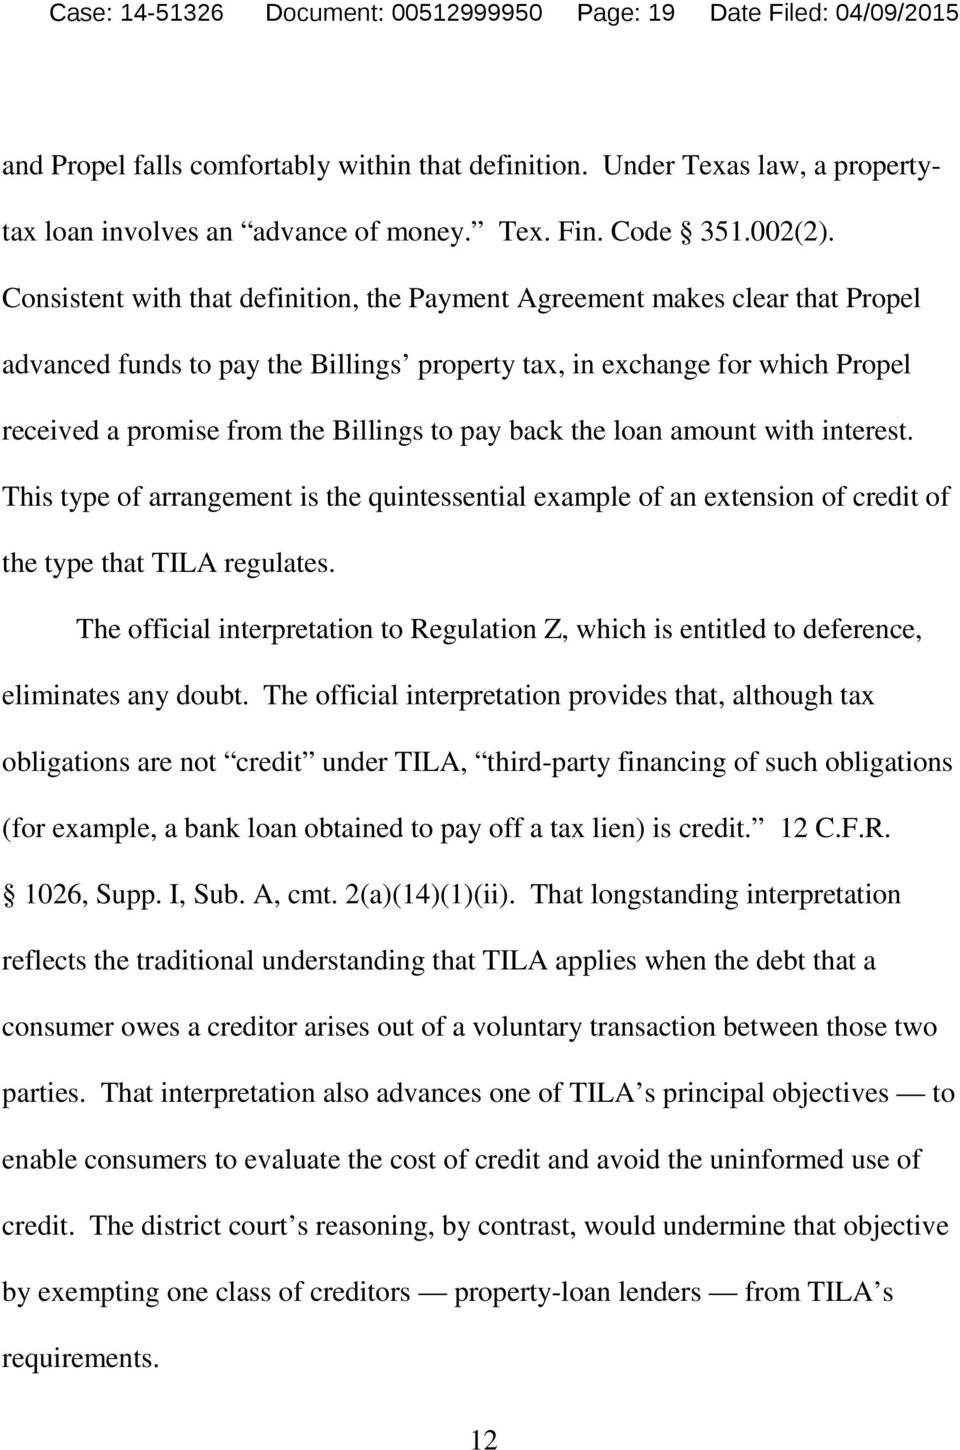 Consistent with that definition, the Payment Agreement makes clear that Propel advanced funds to pay the Billings property tax, in exchange for which Propel received a promise from the Billings to